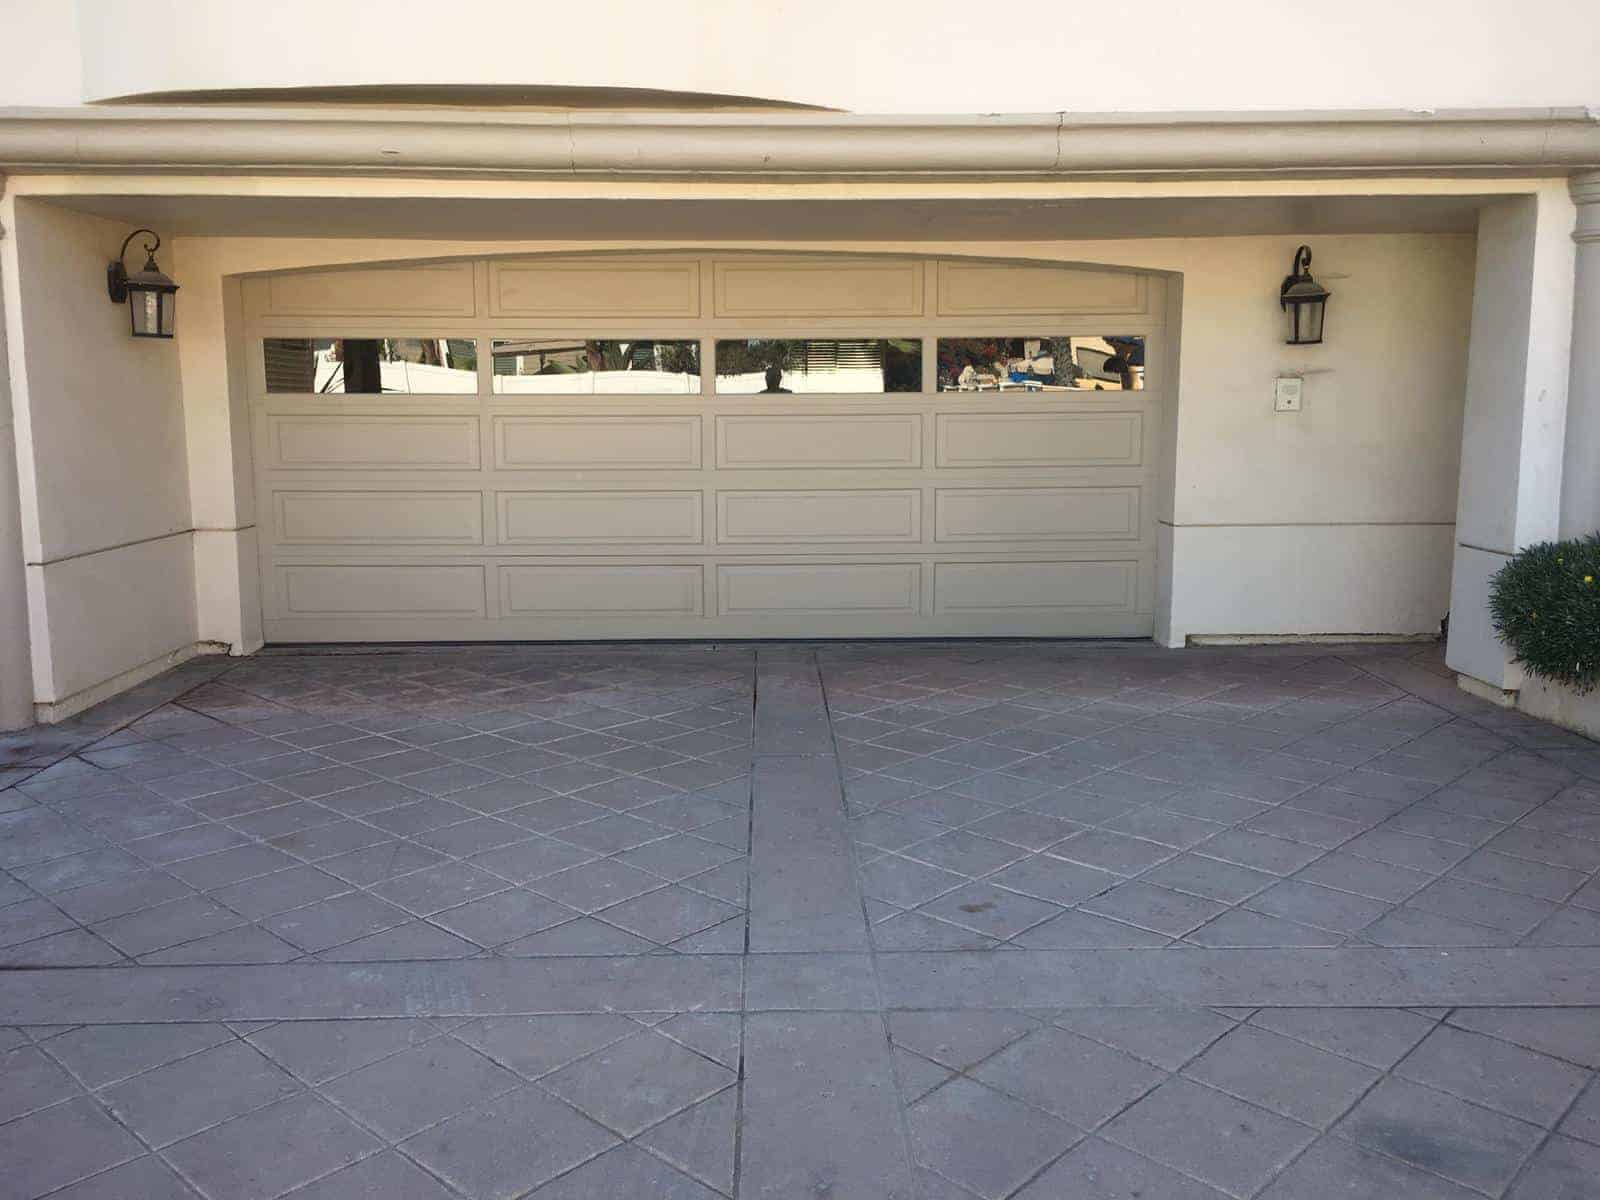 Simi Valley CA Garage Door Repair & Replacement